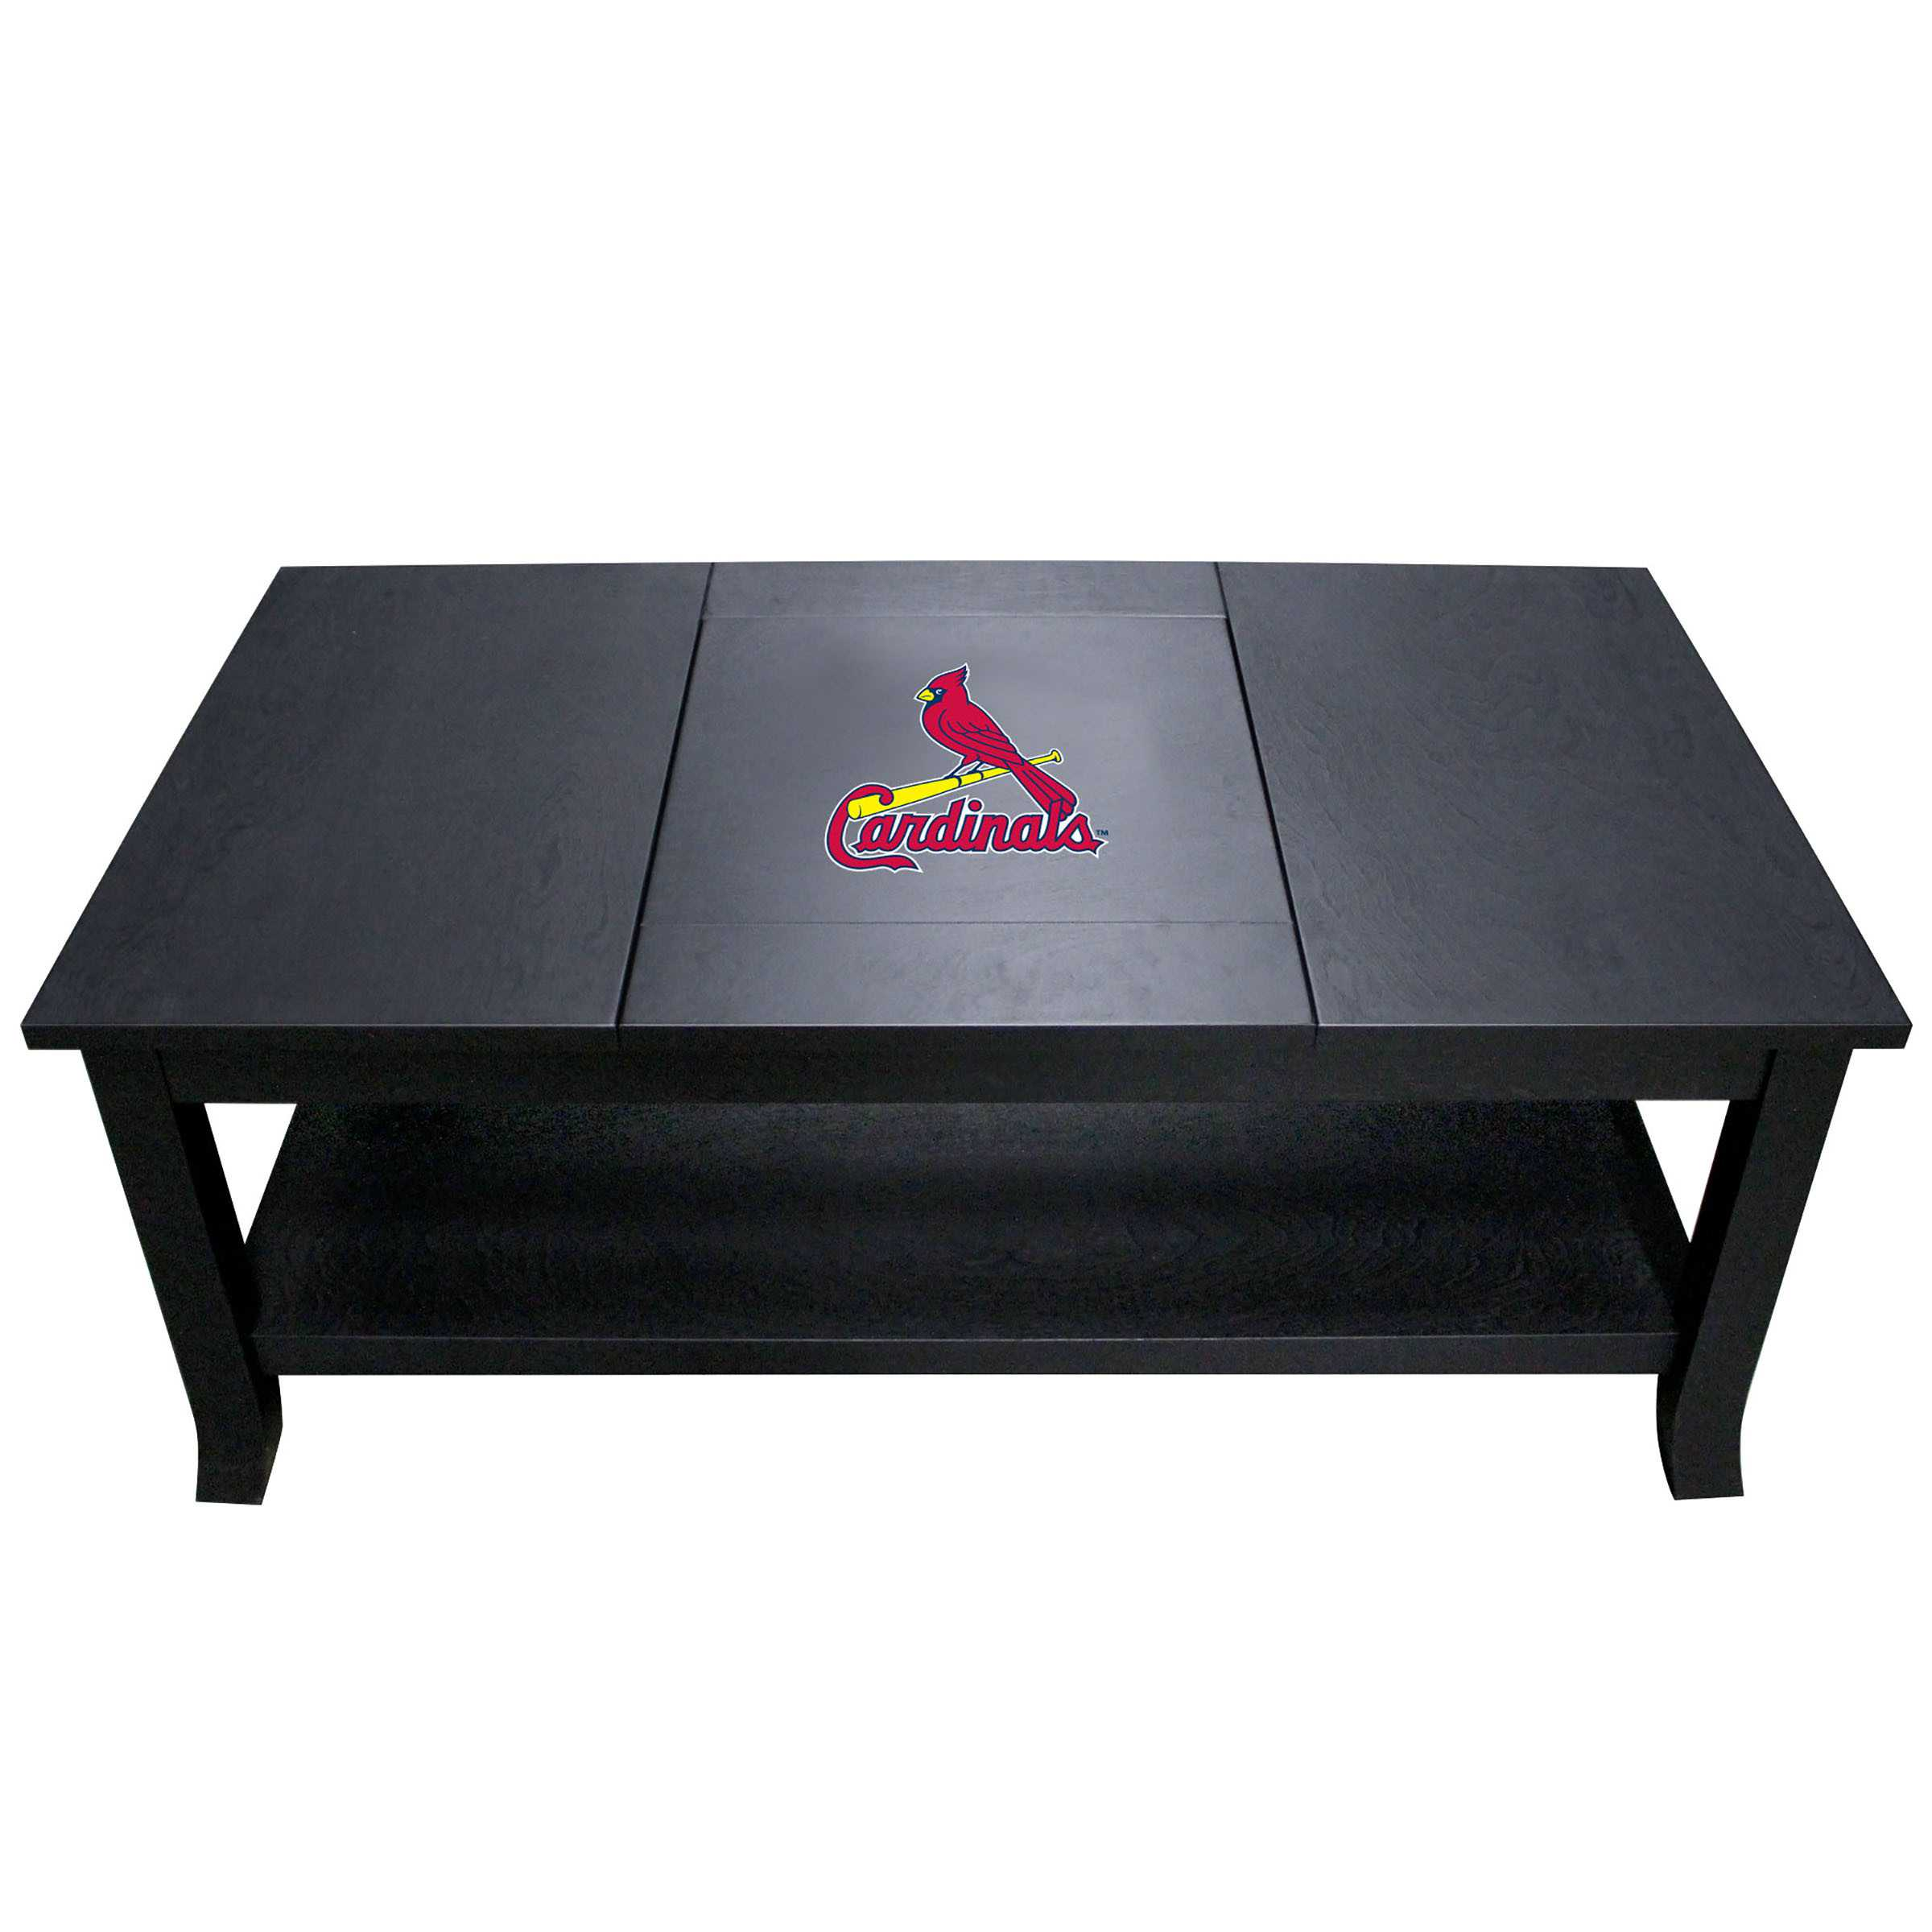 ST LOUIS CARDINALS COFFEE TABLE